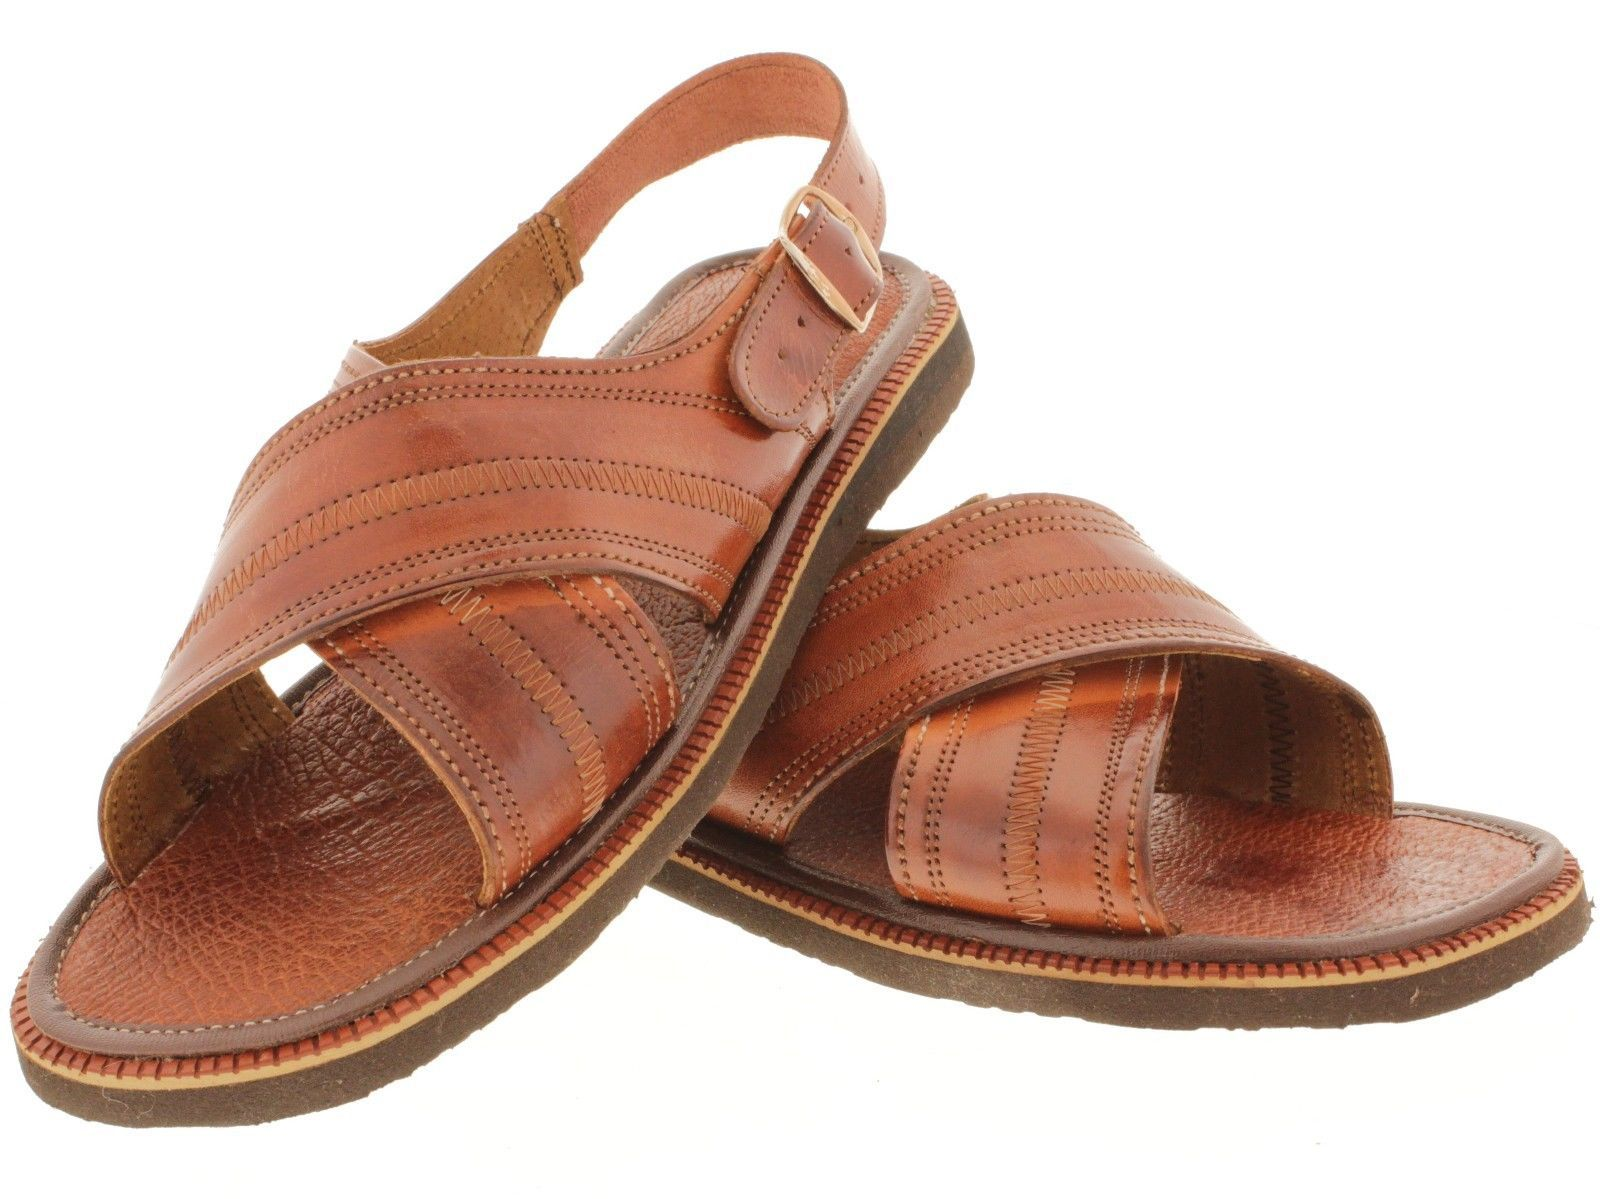 4f8d6be209e MEN S BROWN GENUINE HAND-WOVEN LEATHER MEXICAN SANDALS HUARACHES     brown   mexican  huaraches